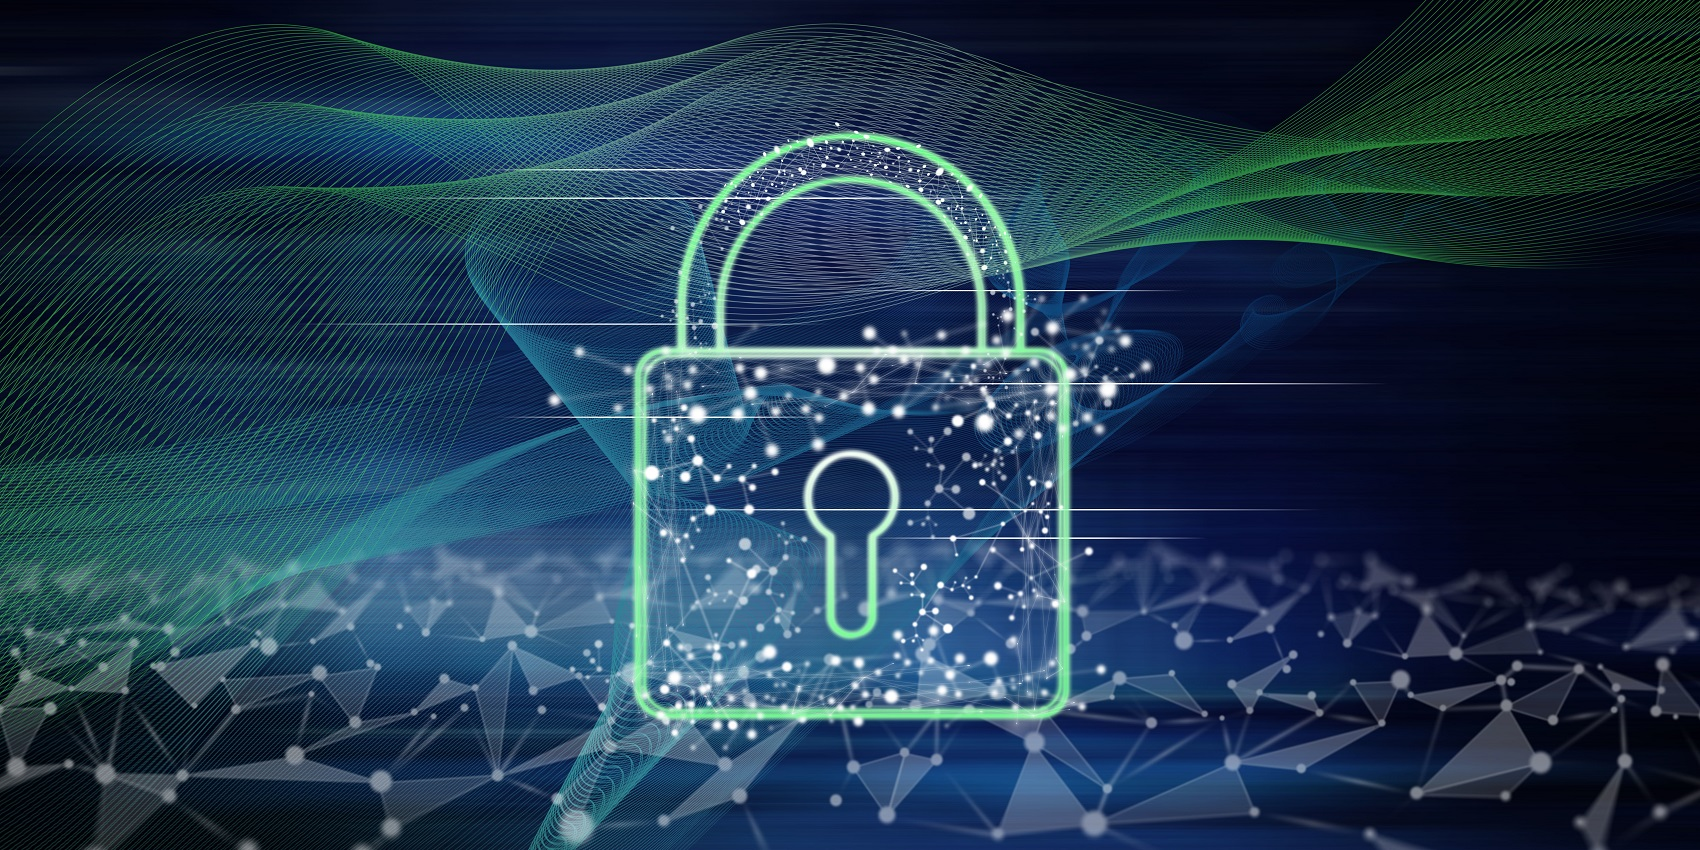 What Can Your Company Do To Attract Top Cybersecurity Talent? TechNative